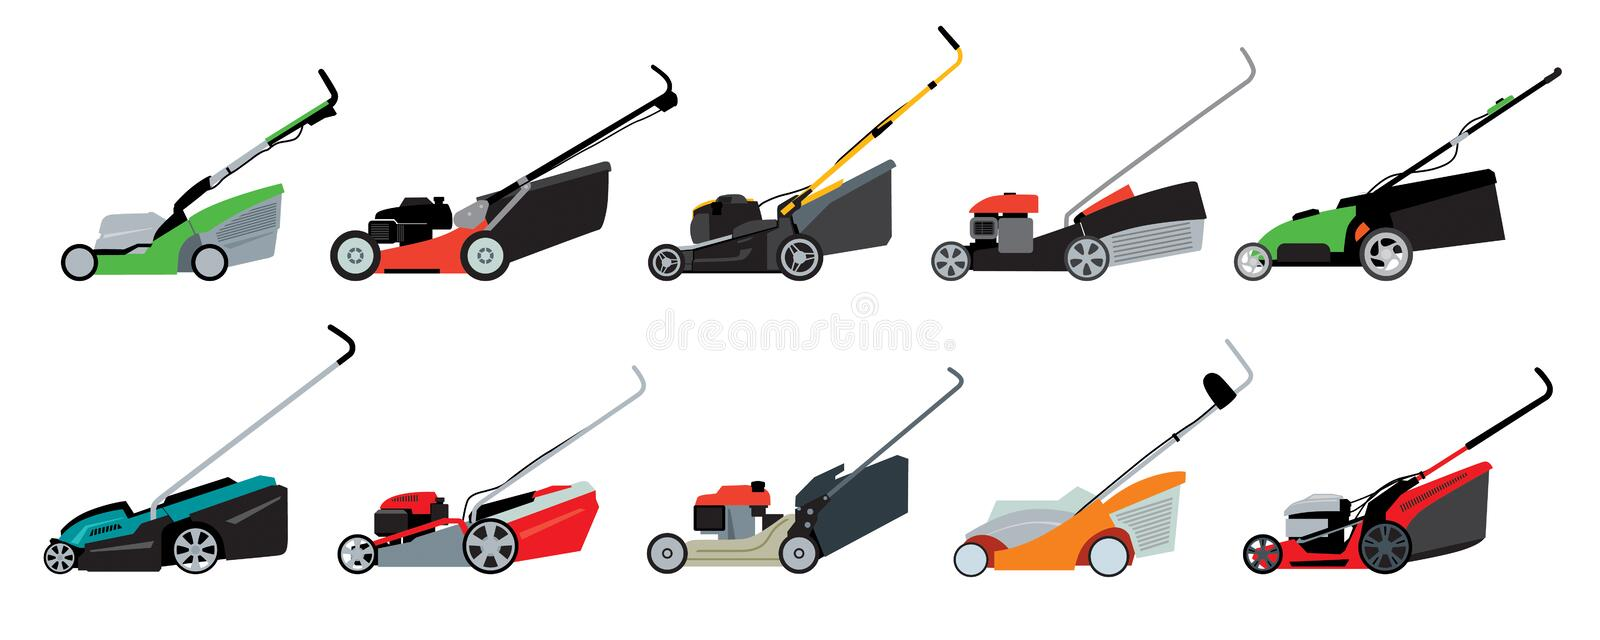 Set of various lawn mowers. Vector full color graphics royalty free illustration